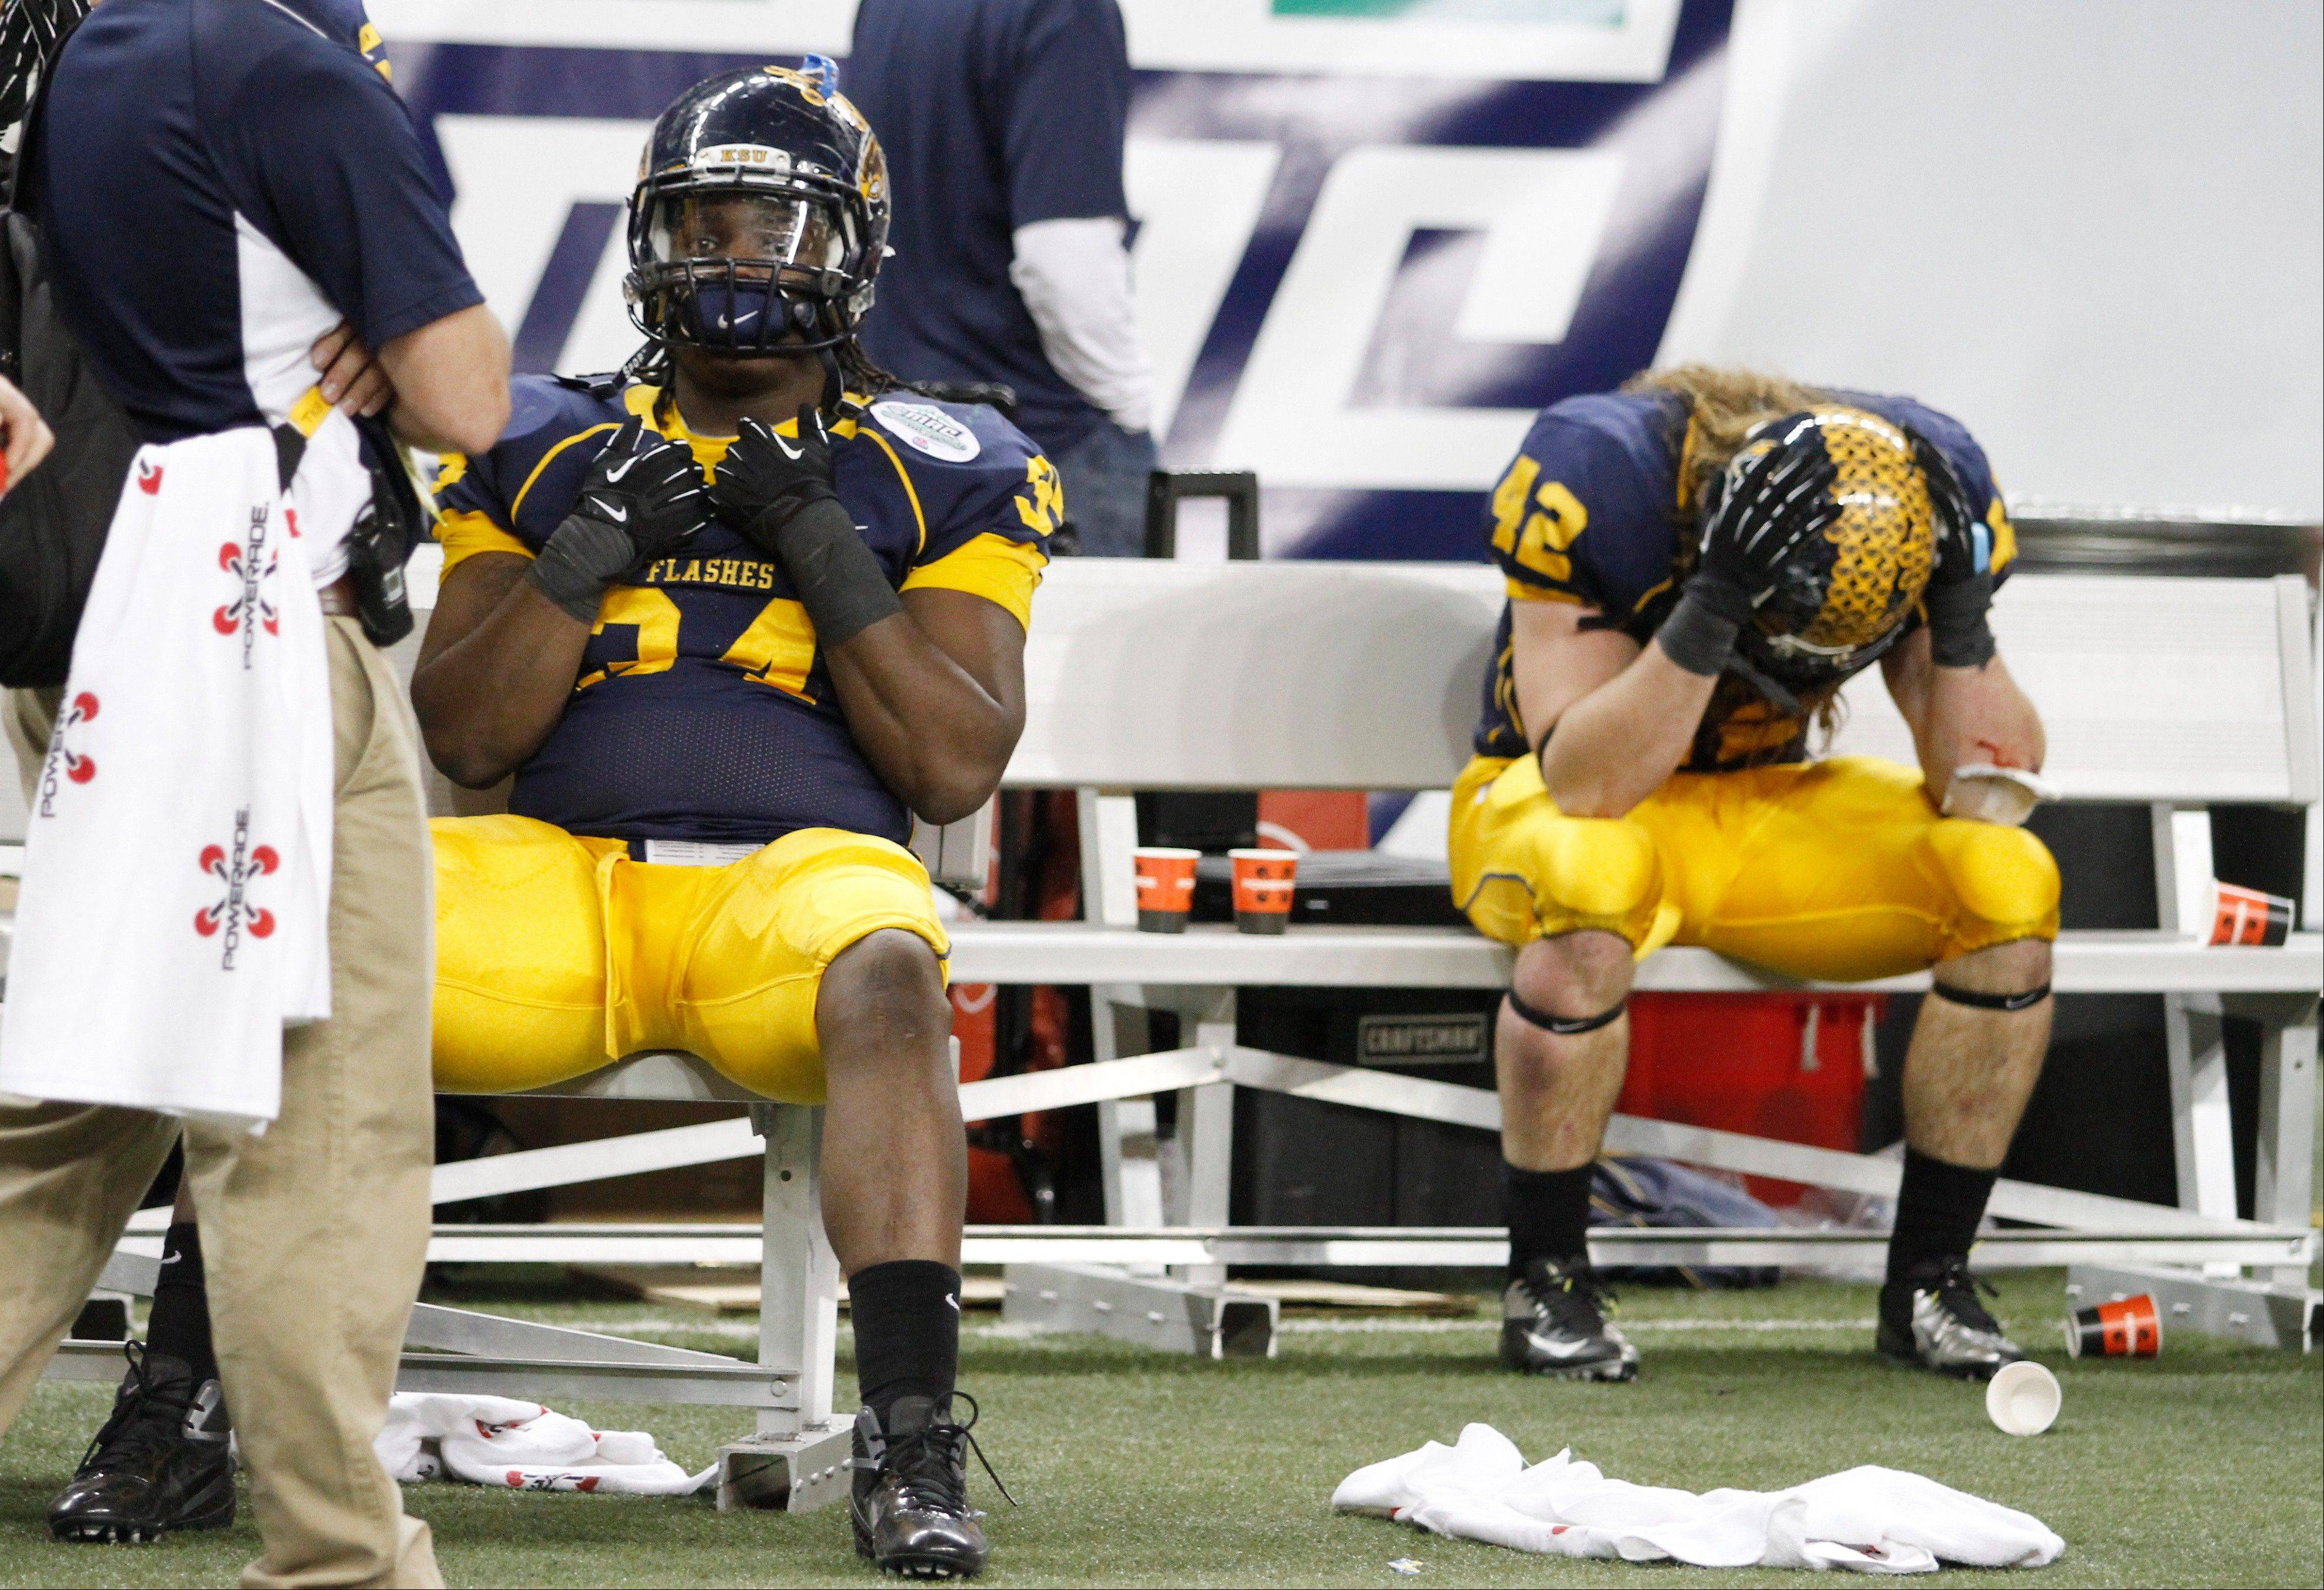 Kent State defensive lineman Richard Gray (34) and tight end Tim Erjavec (42) sit on the bench Friday after losing to Northern Illinois 44-37 in double overtime.